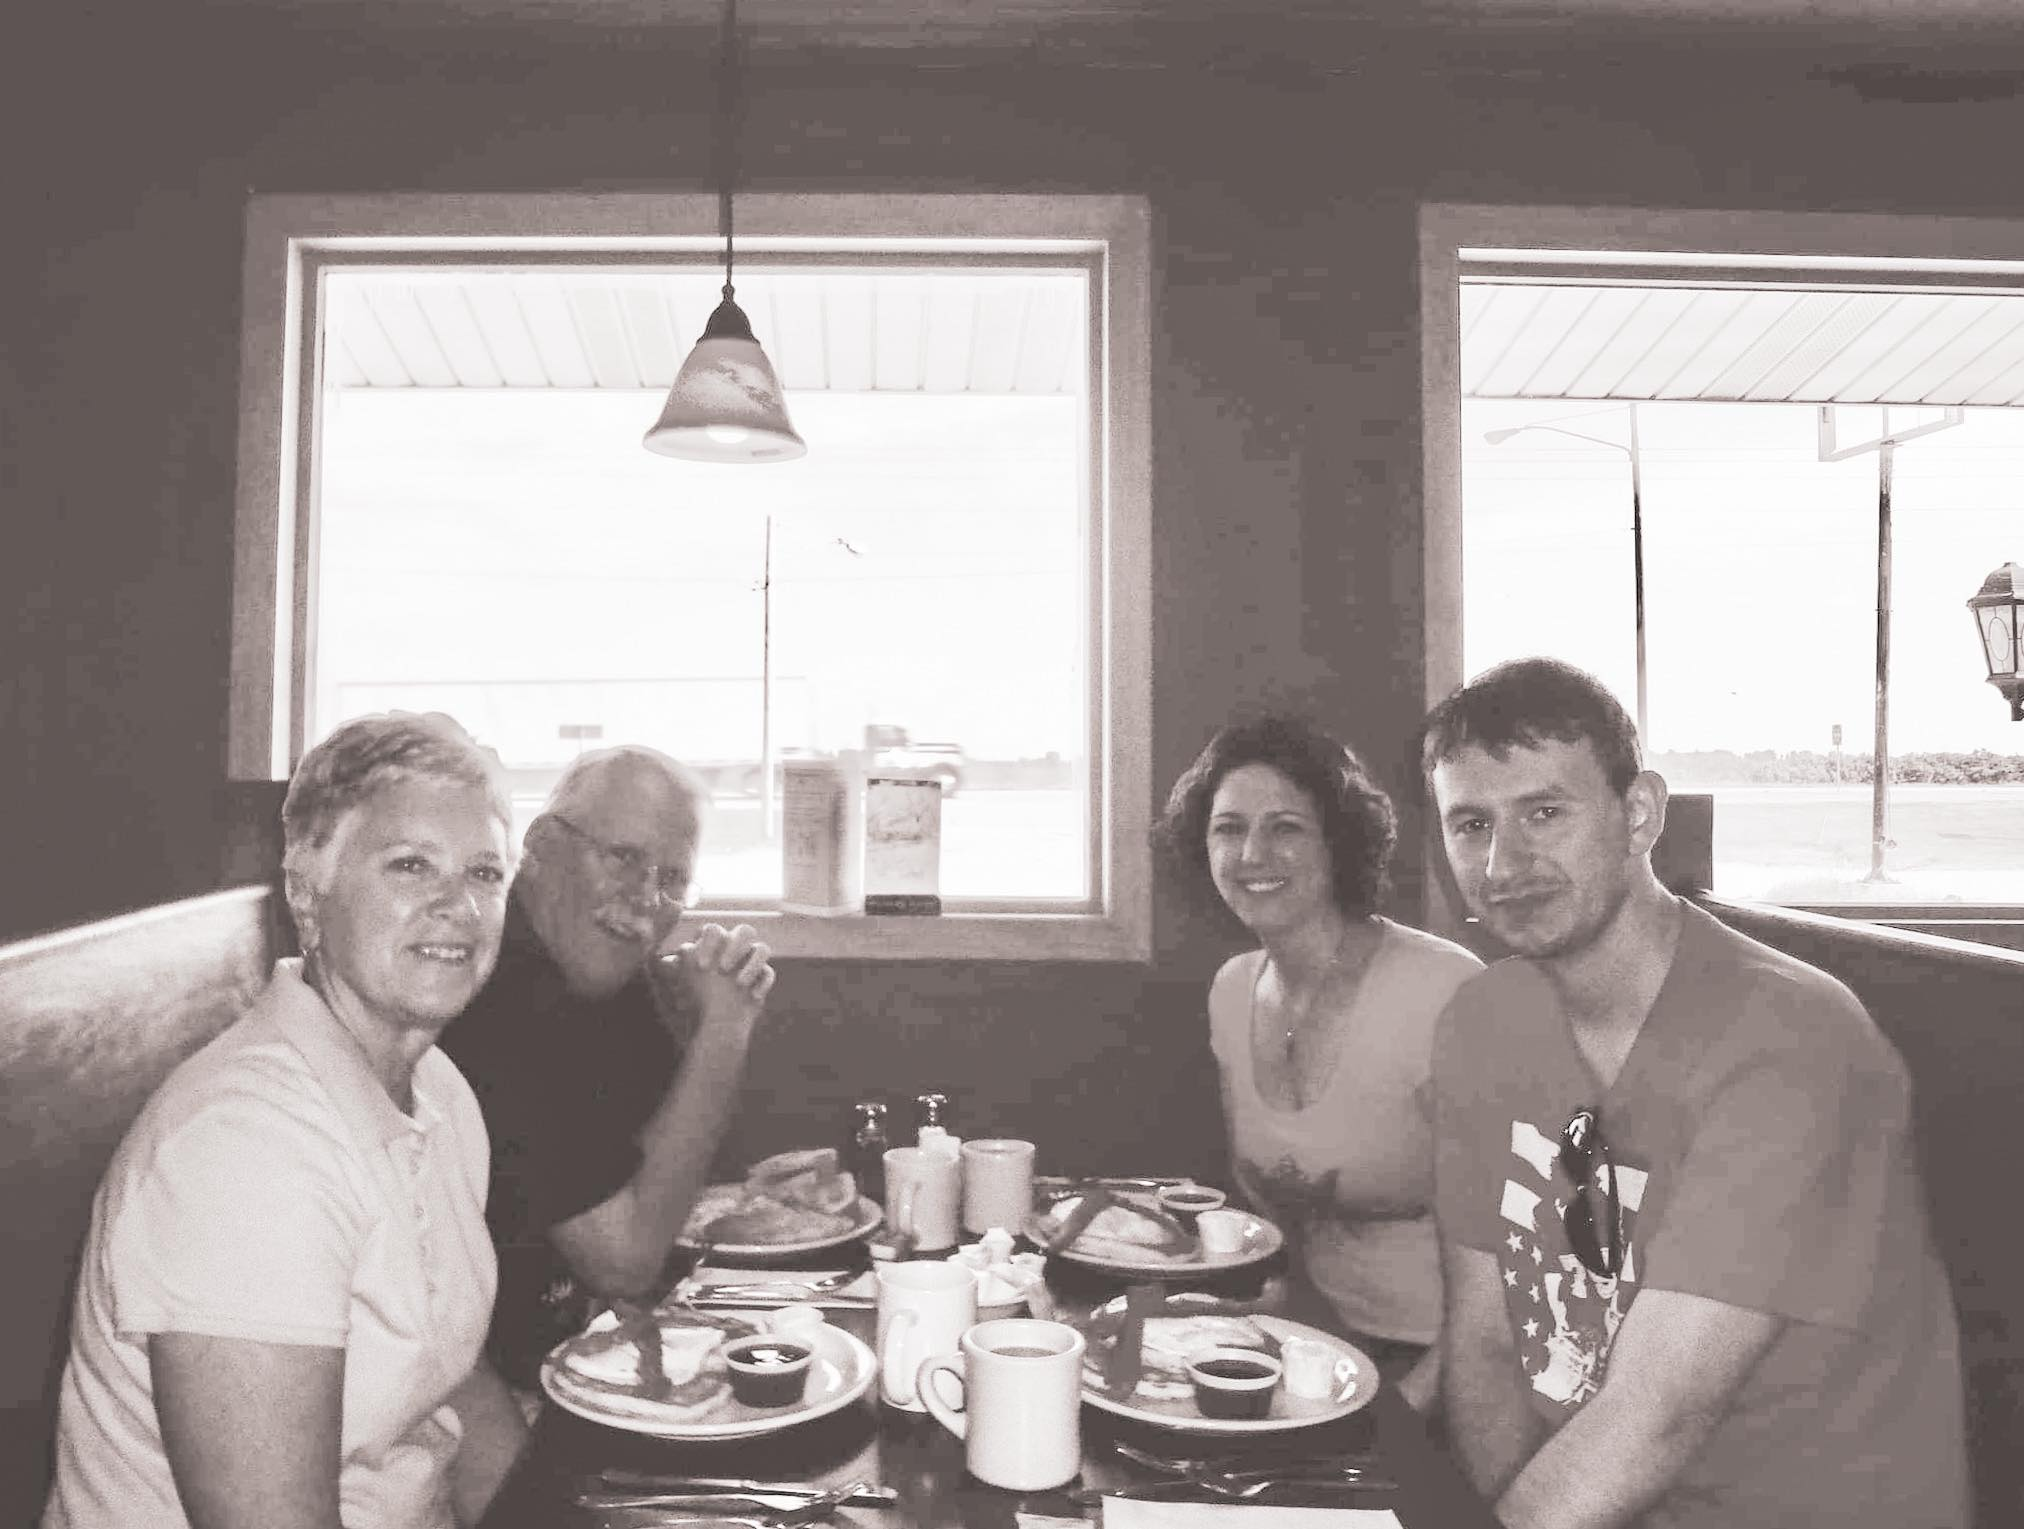 Breakfast at Country House Diner New Highway 30 Iowa